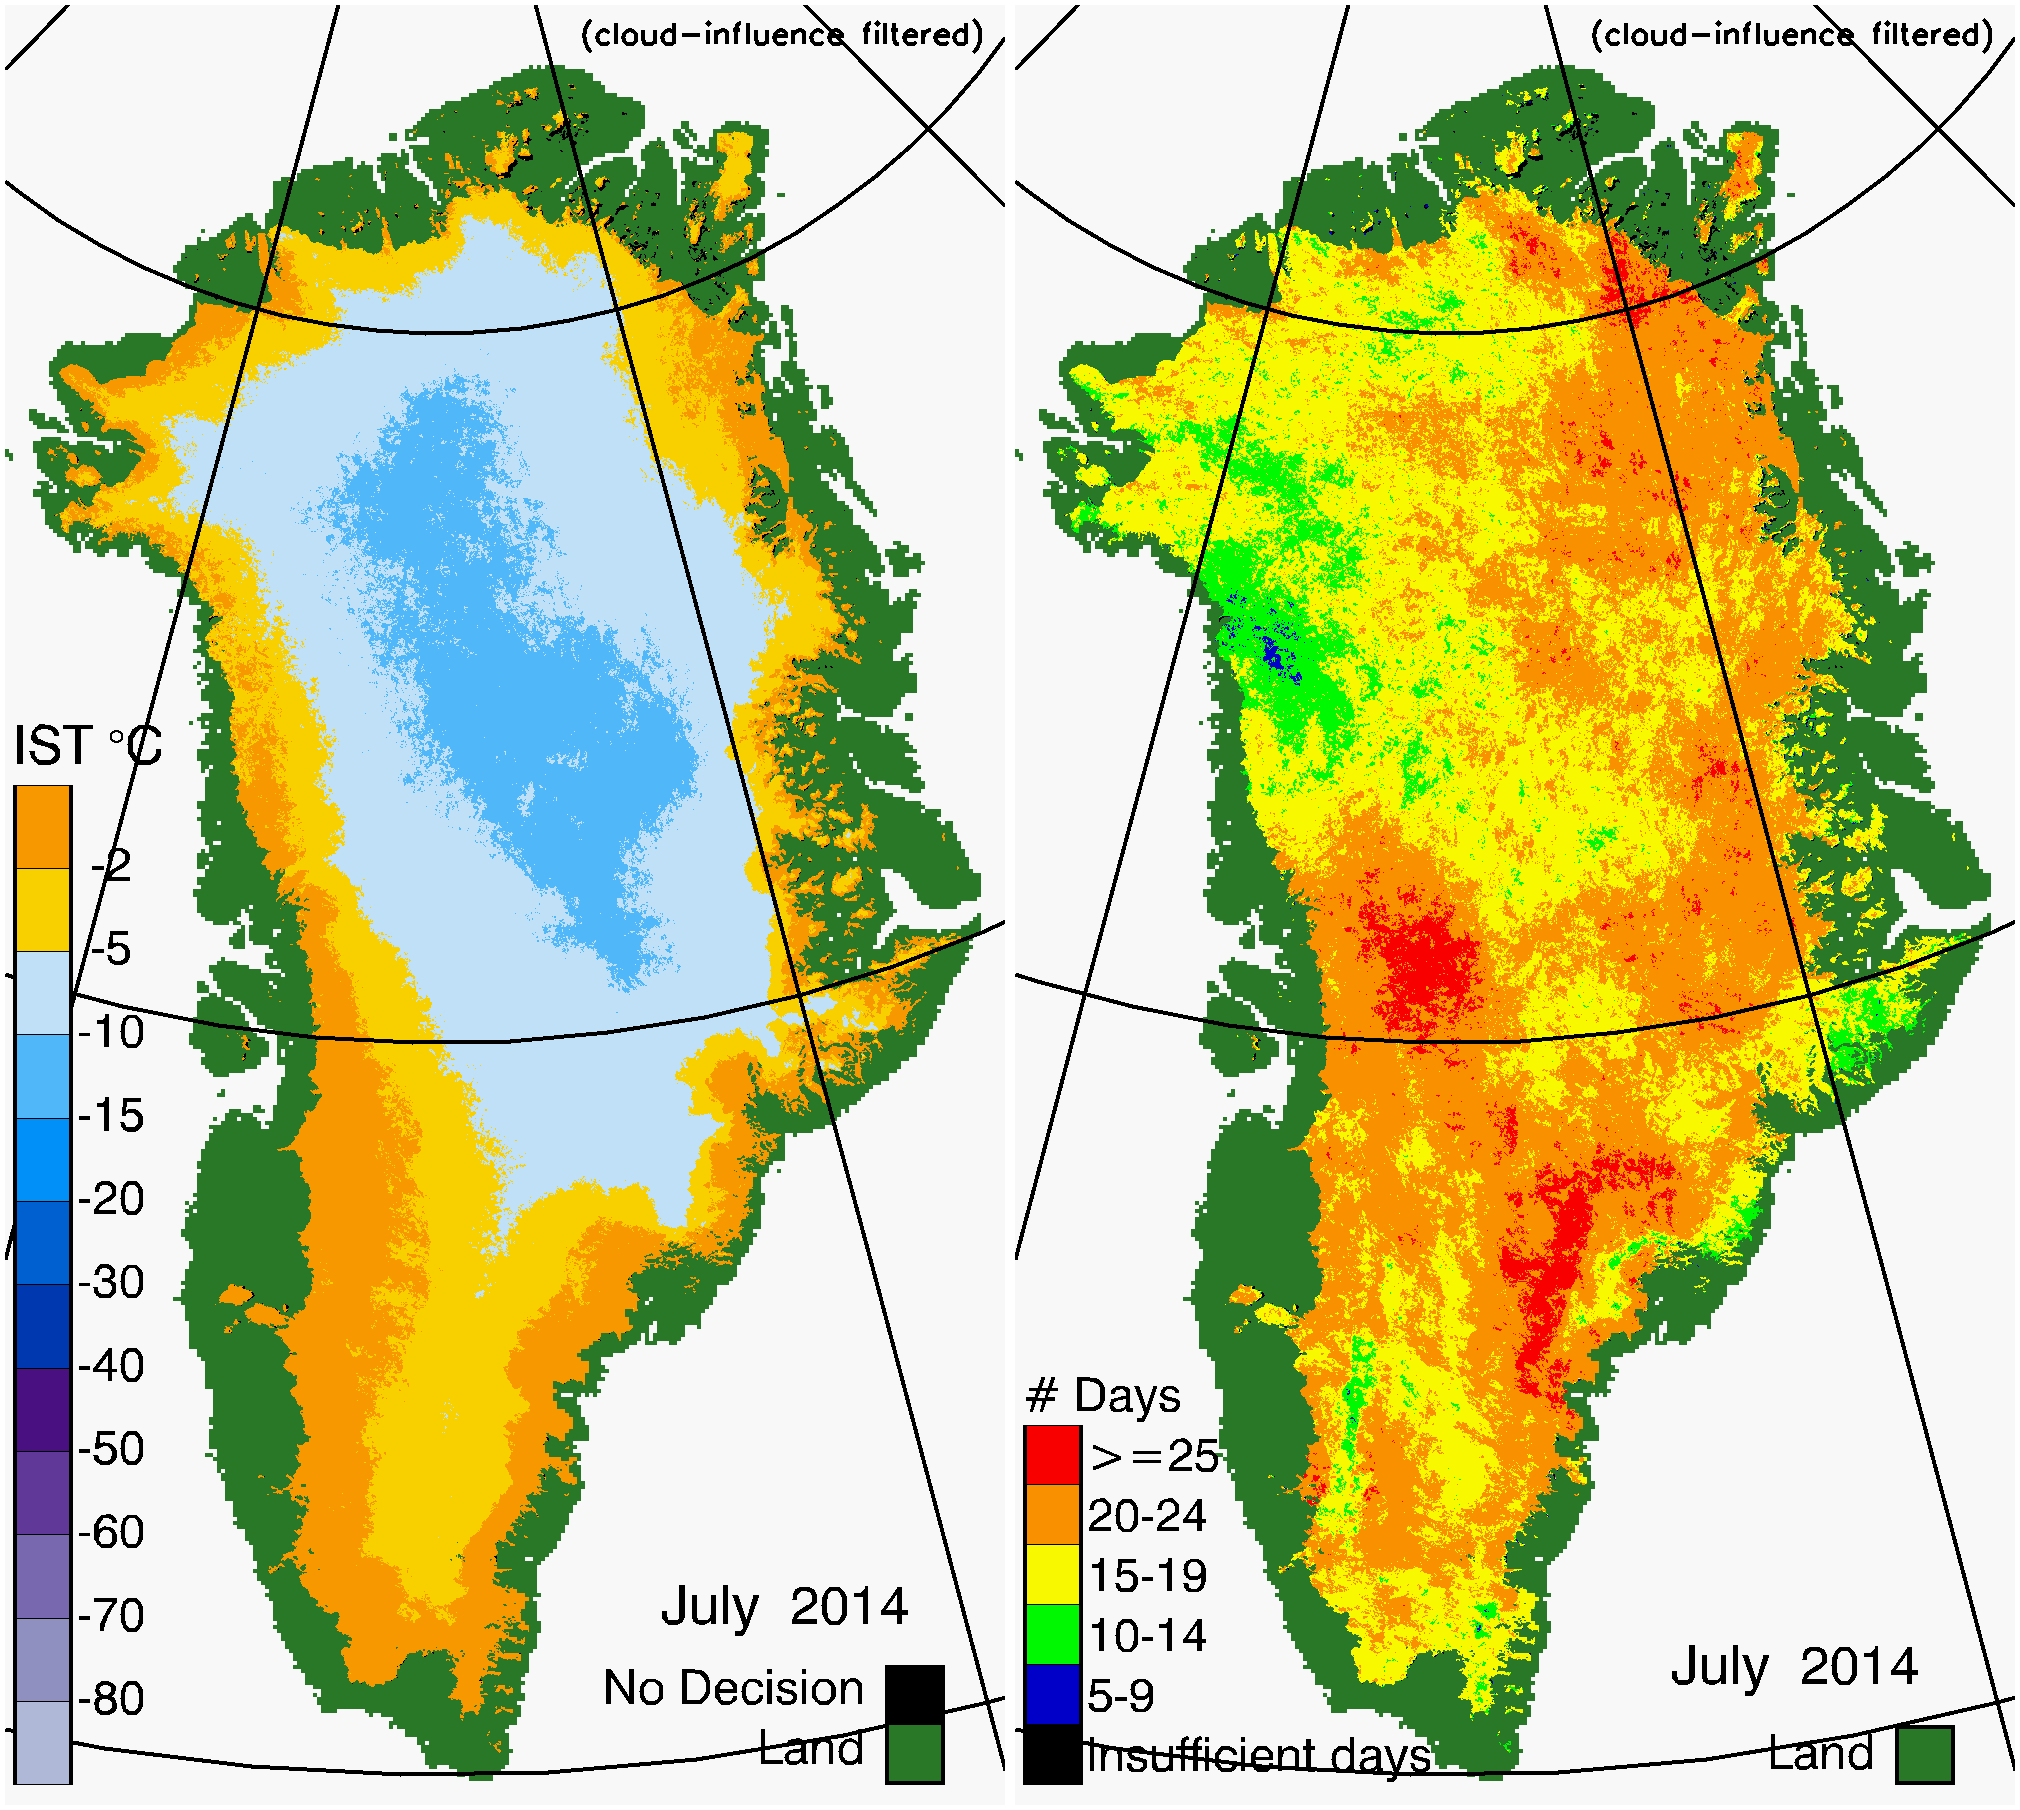 Greenland Surface Temp 07/2014